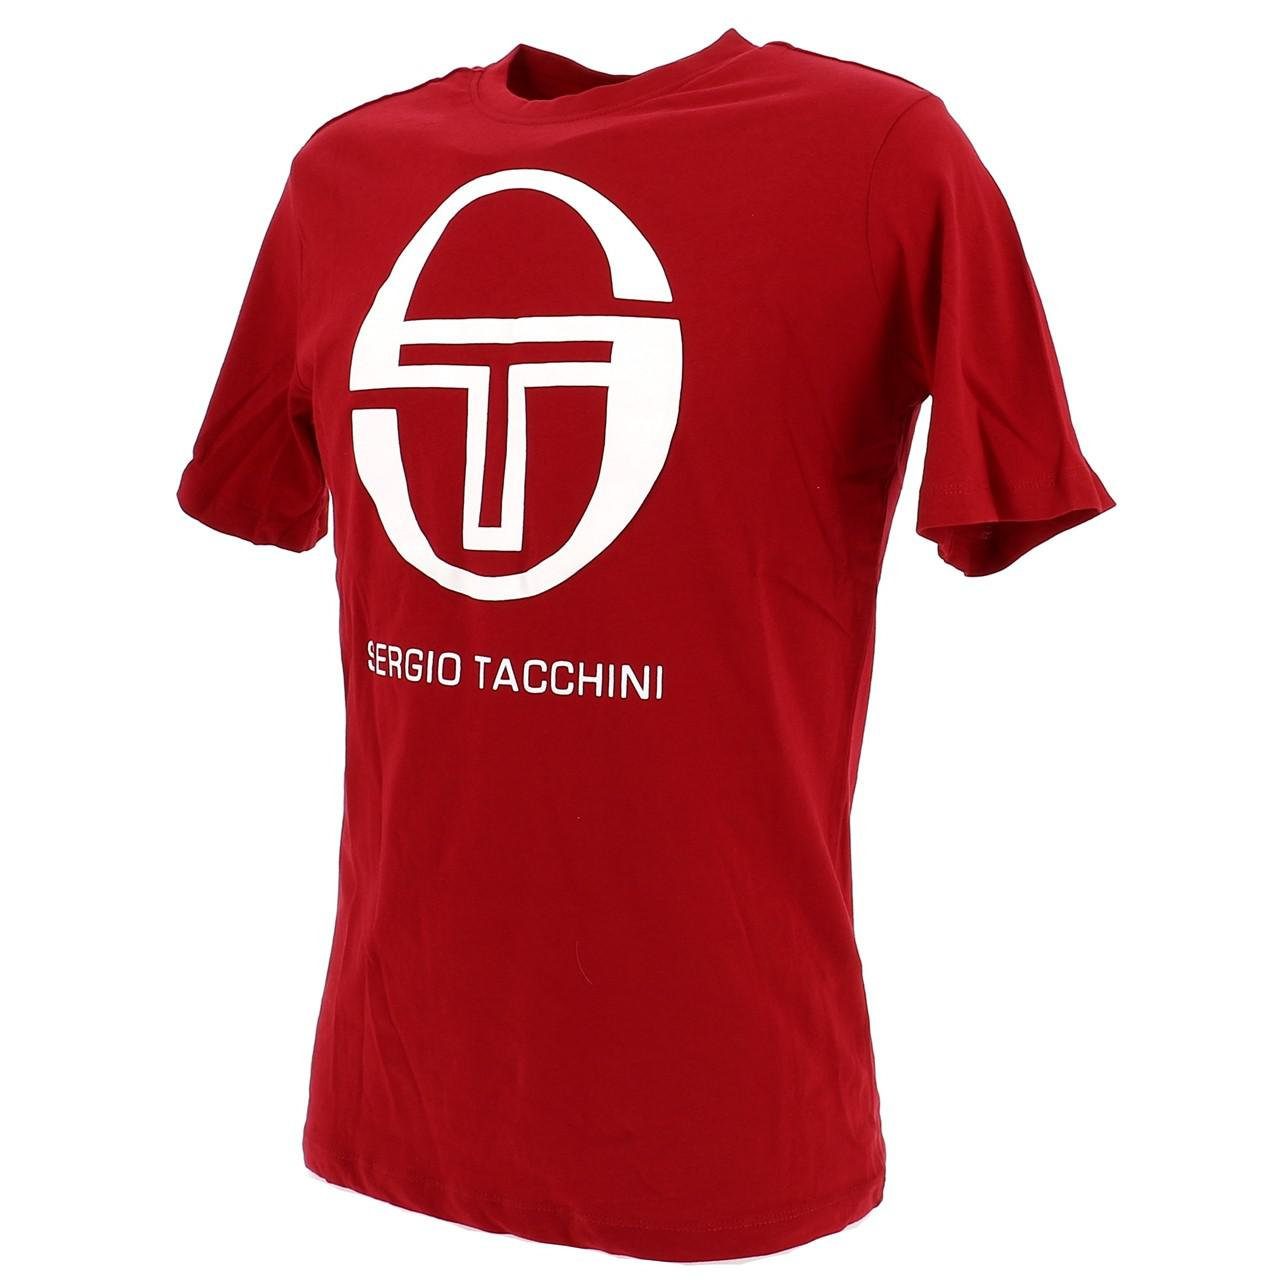 Short-Sergio-tacchini-Candytuft-Apple-Red-Mc-Tee-Red-17767 thumbnail 4